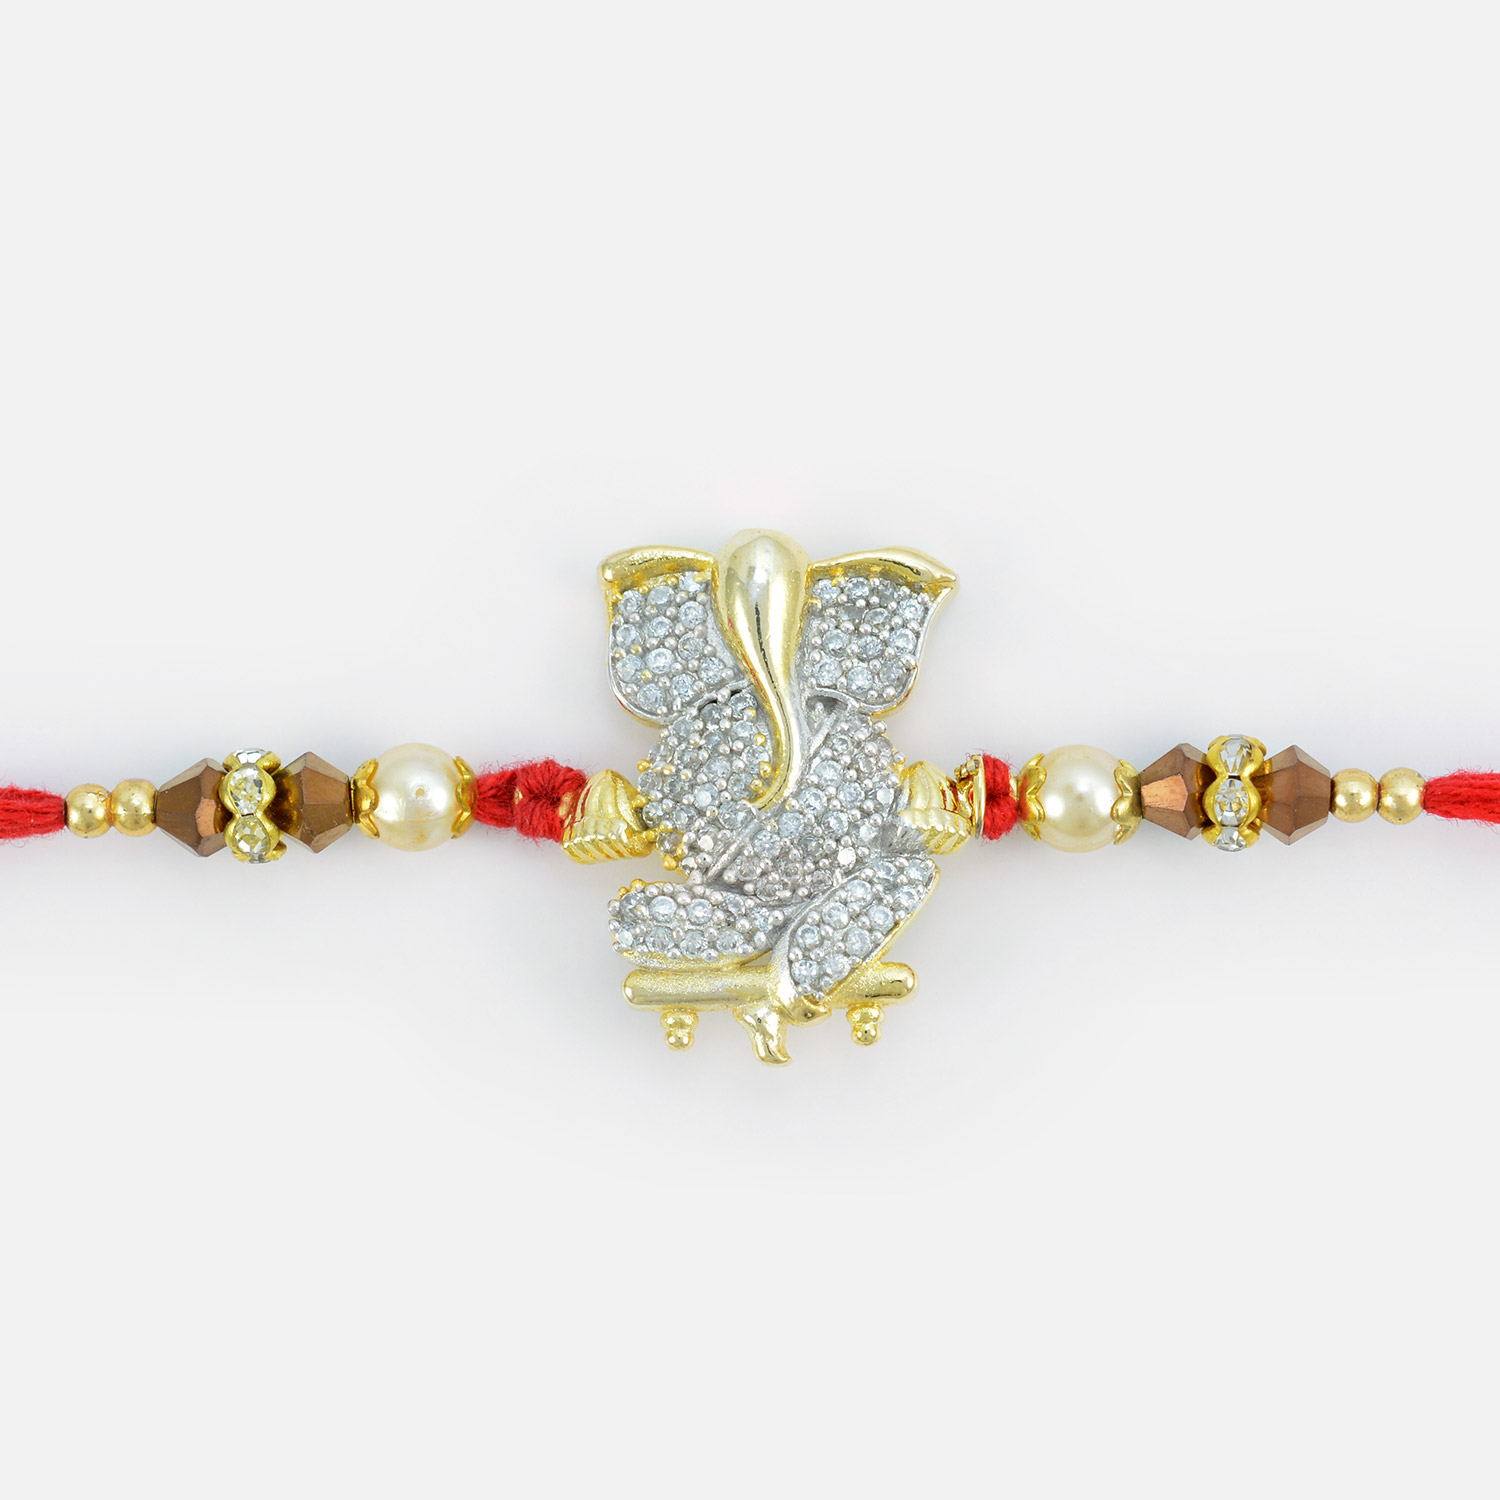 Auspicious Silver and Golden Base Ganesha Rakhi with Pearl and Beads